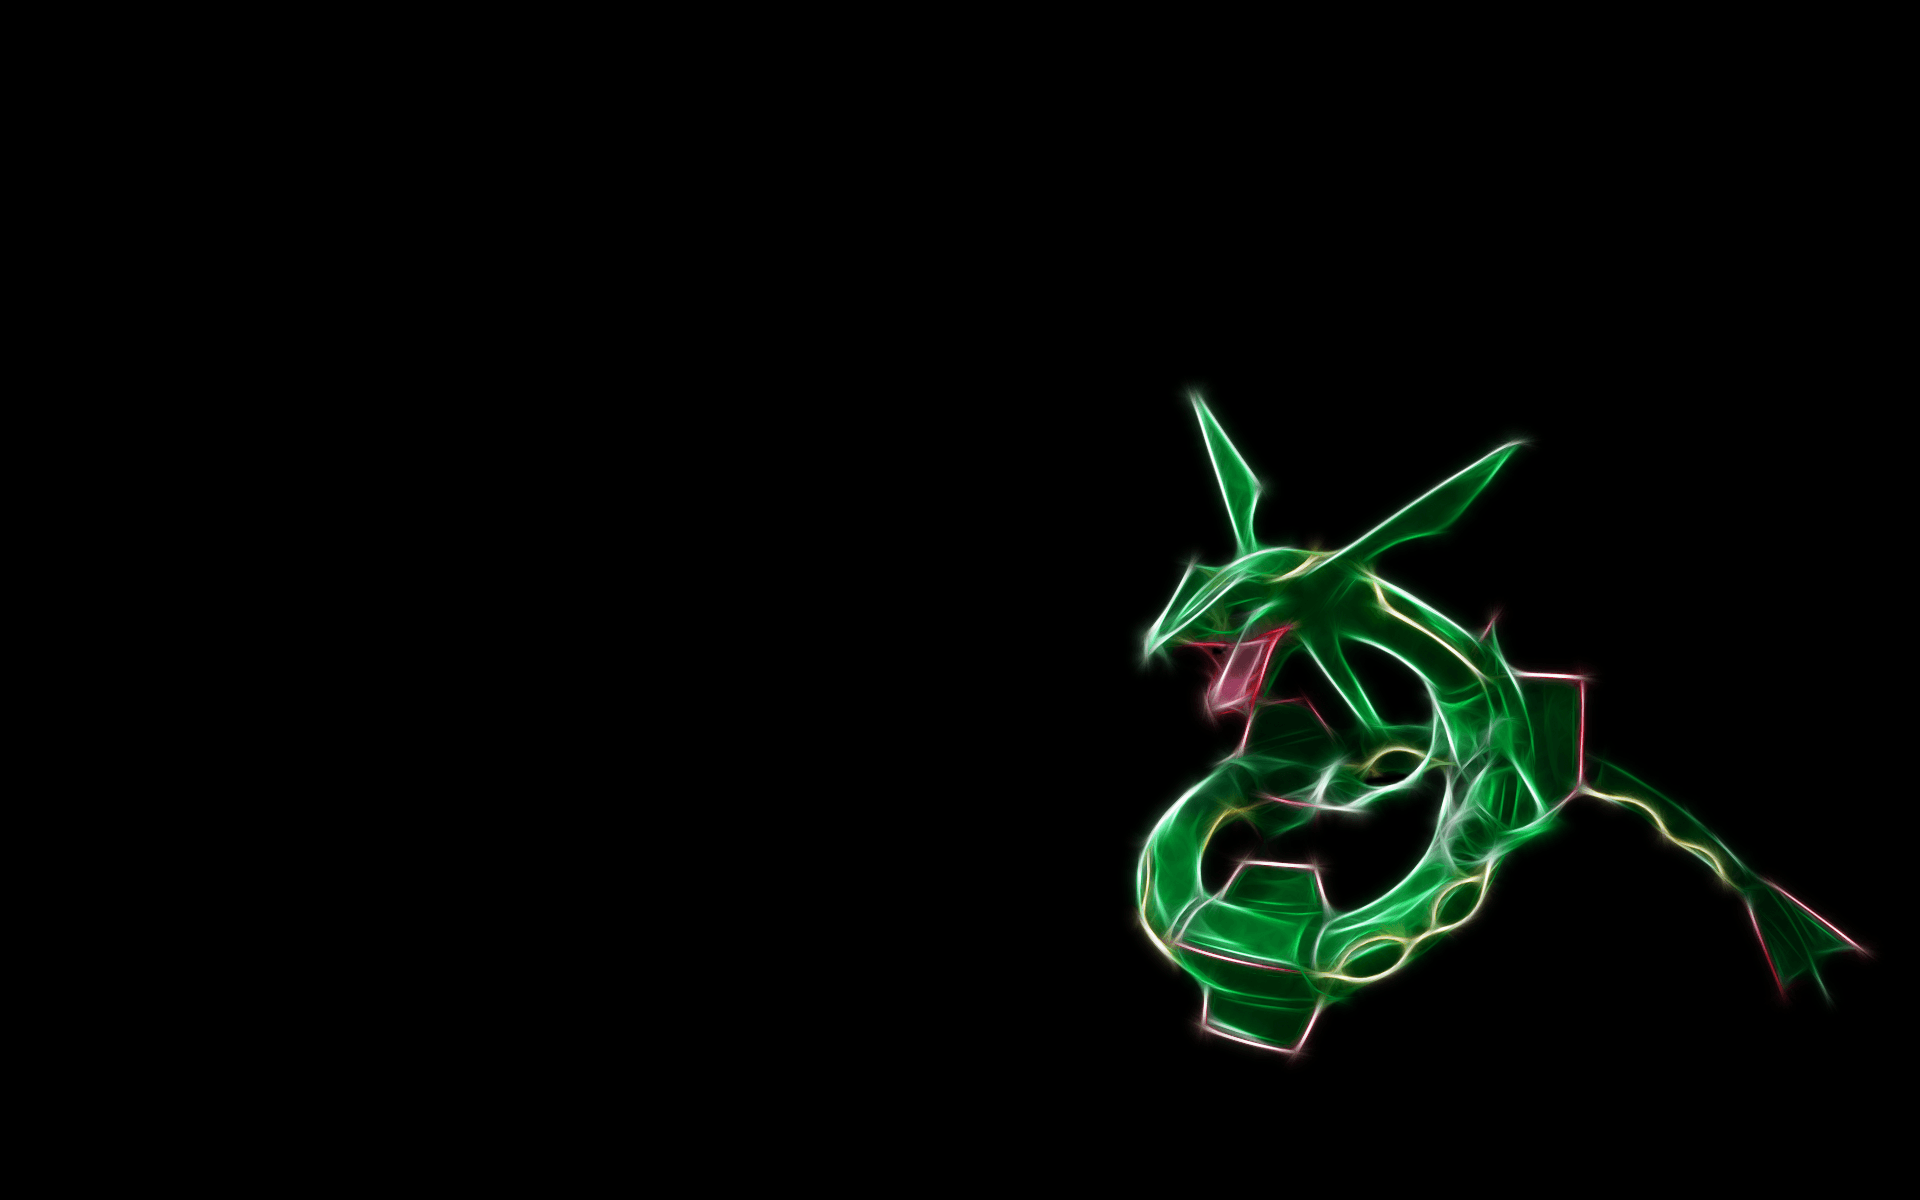 emerald rayquaza wallpapers - photo #21